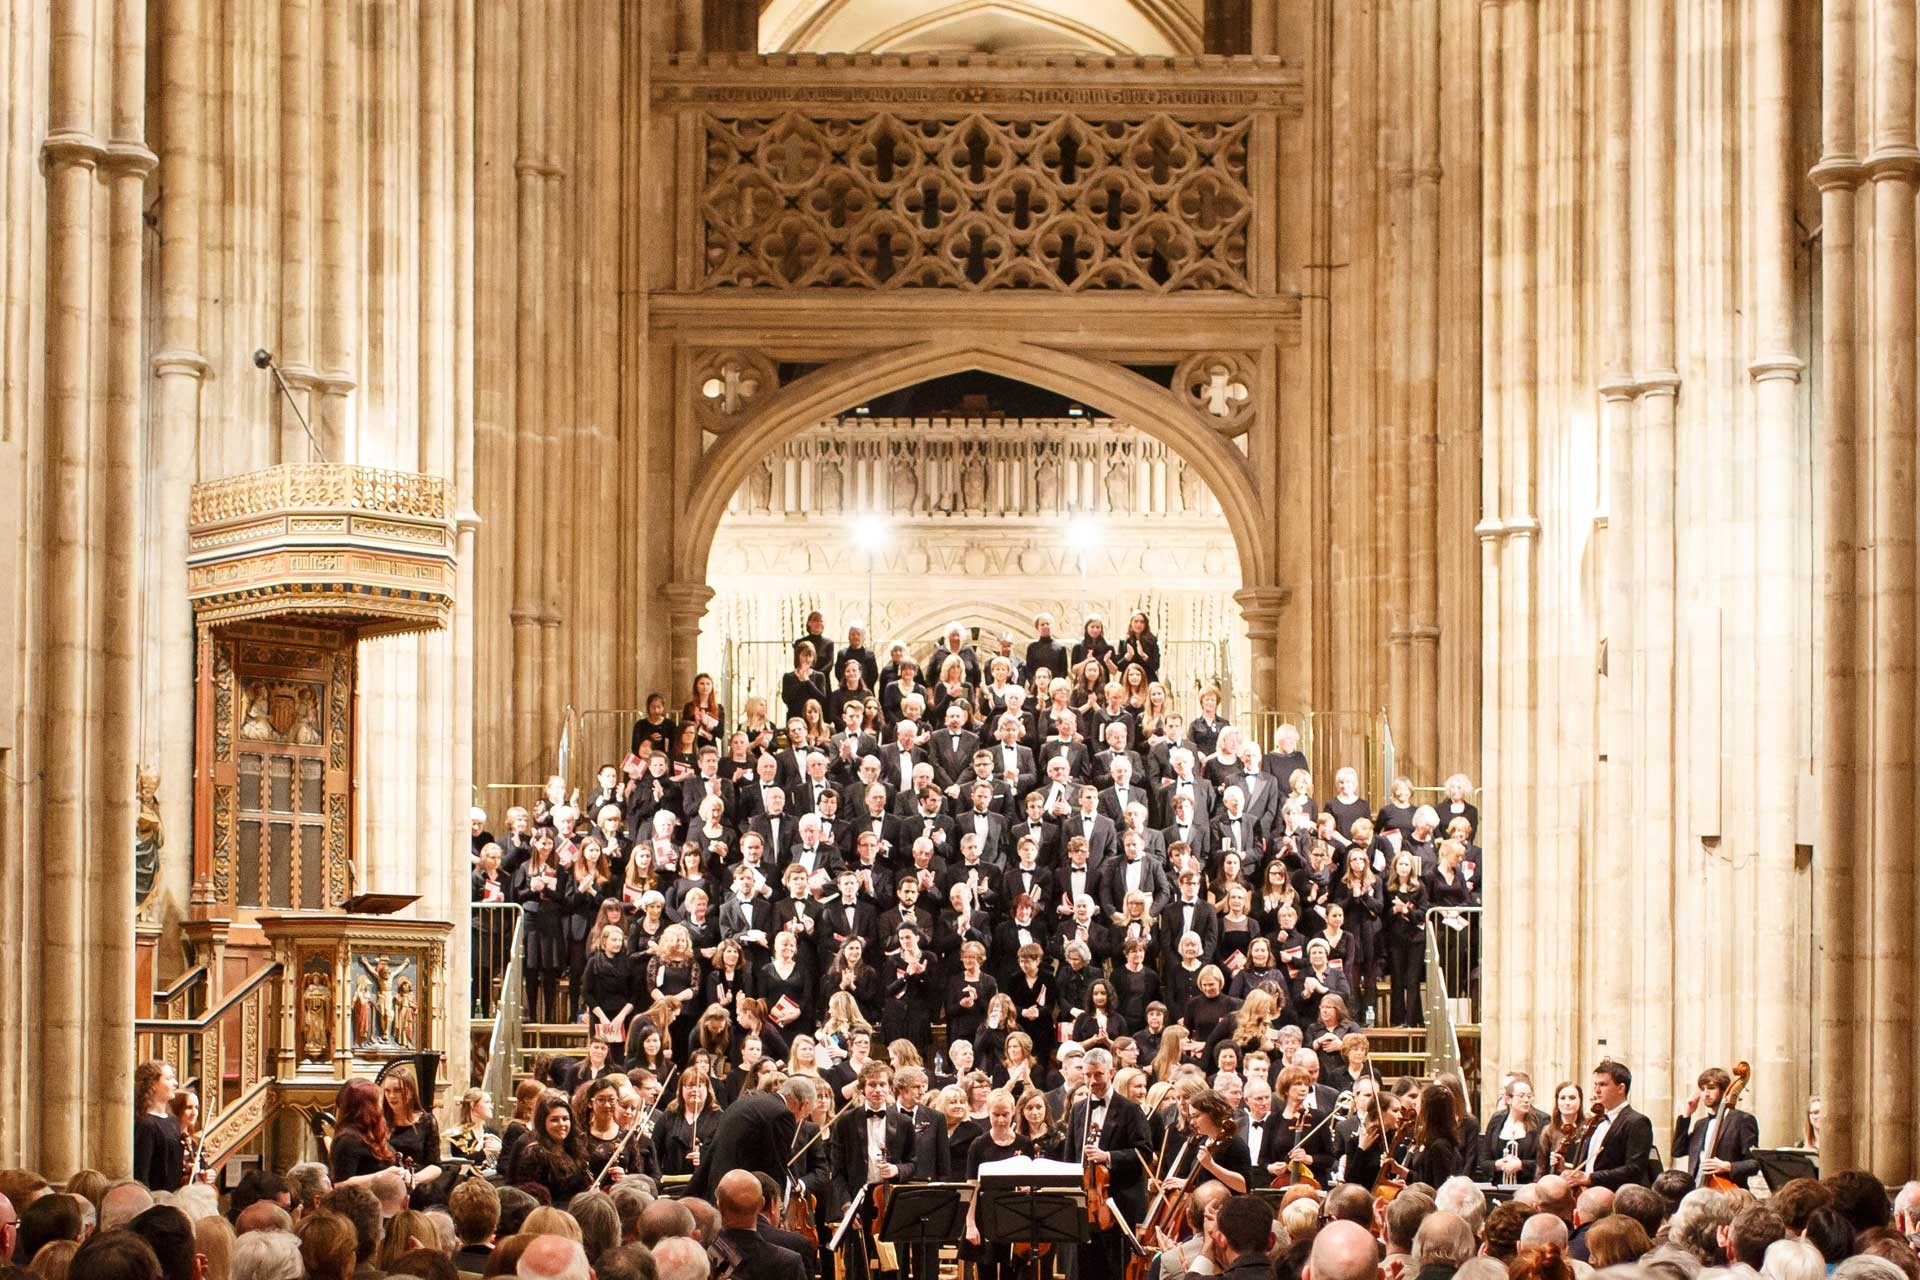 Concert in Canterbury Cathedral